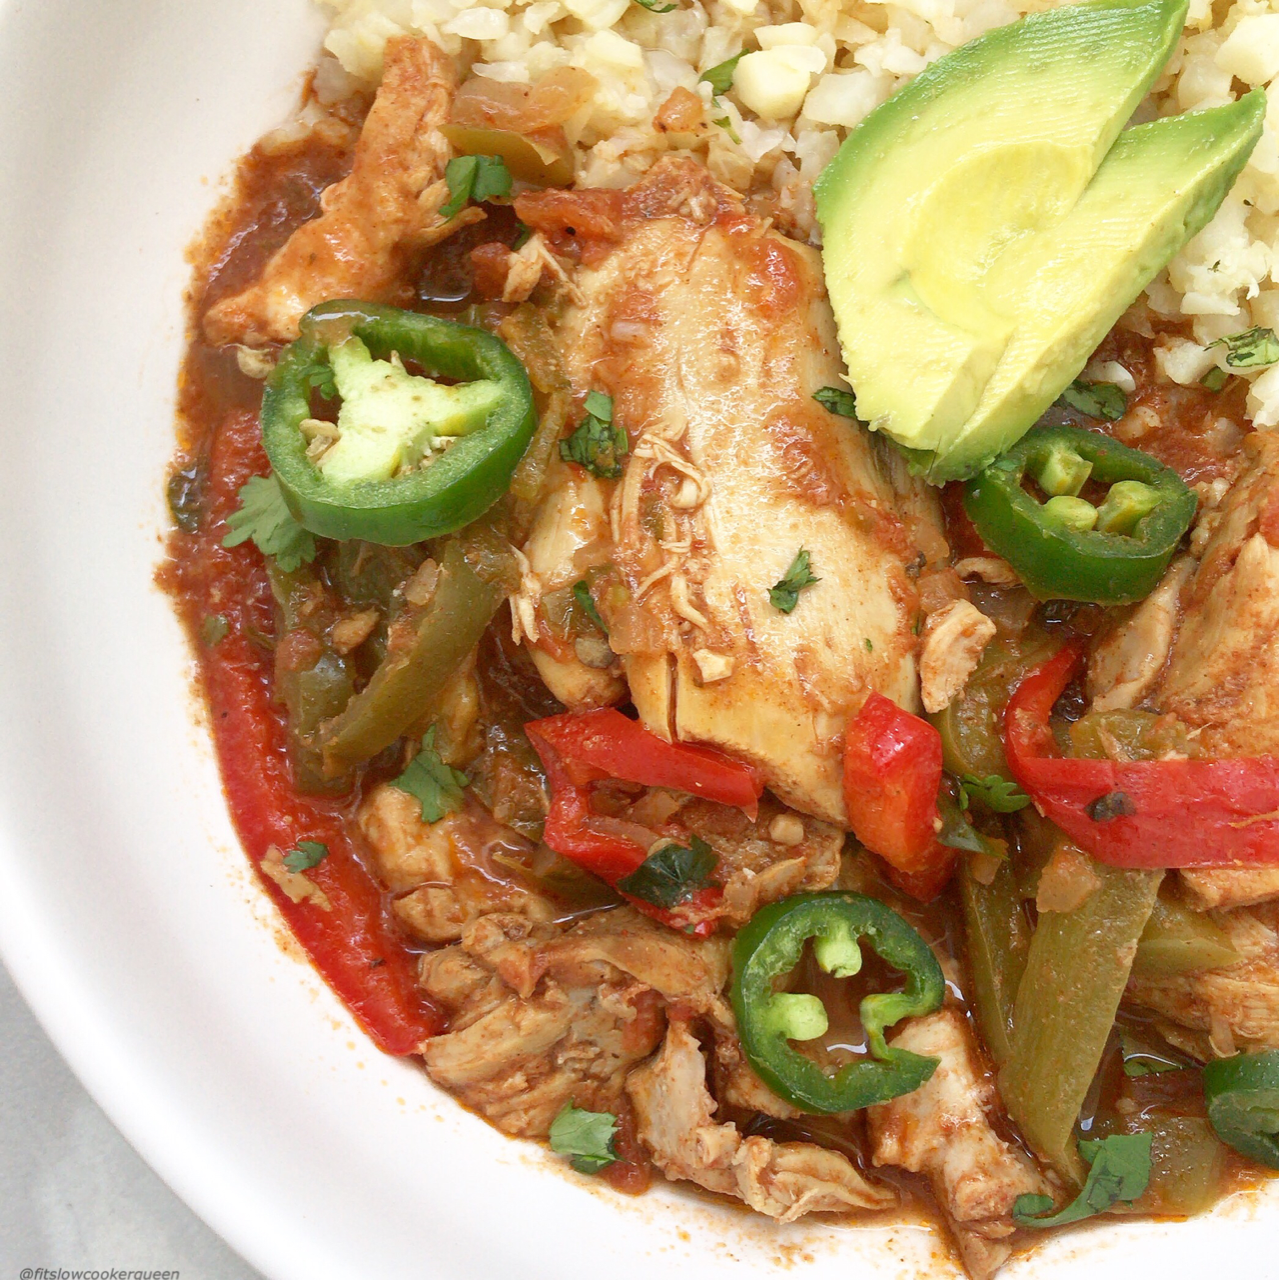 Spicy yet simple Latin flavors fire up this Instant Pot or slow cooker chicken recipe. Paleo, whole30, and low-carb, this is healthy and packing heat!